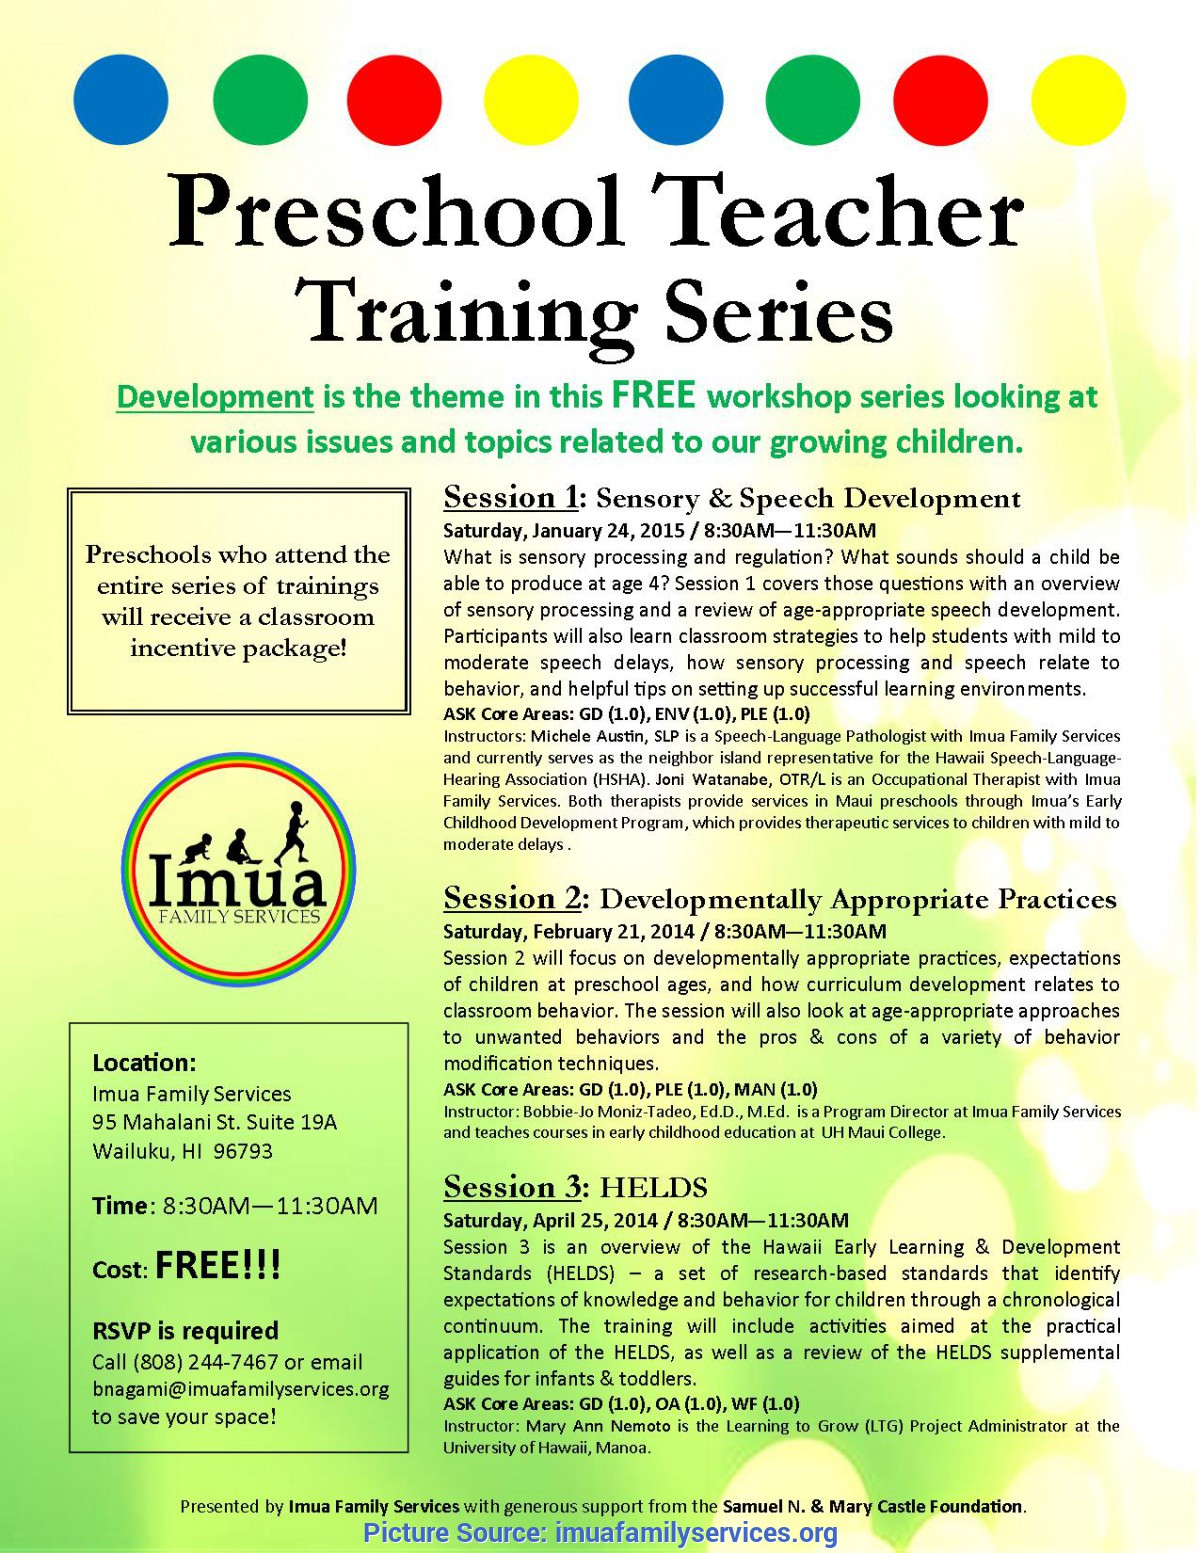 Top Preschool Learning Topics Preschool Teacher Training- Helds €? Hawaii Early Learnin